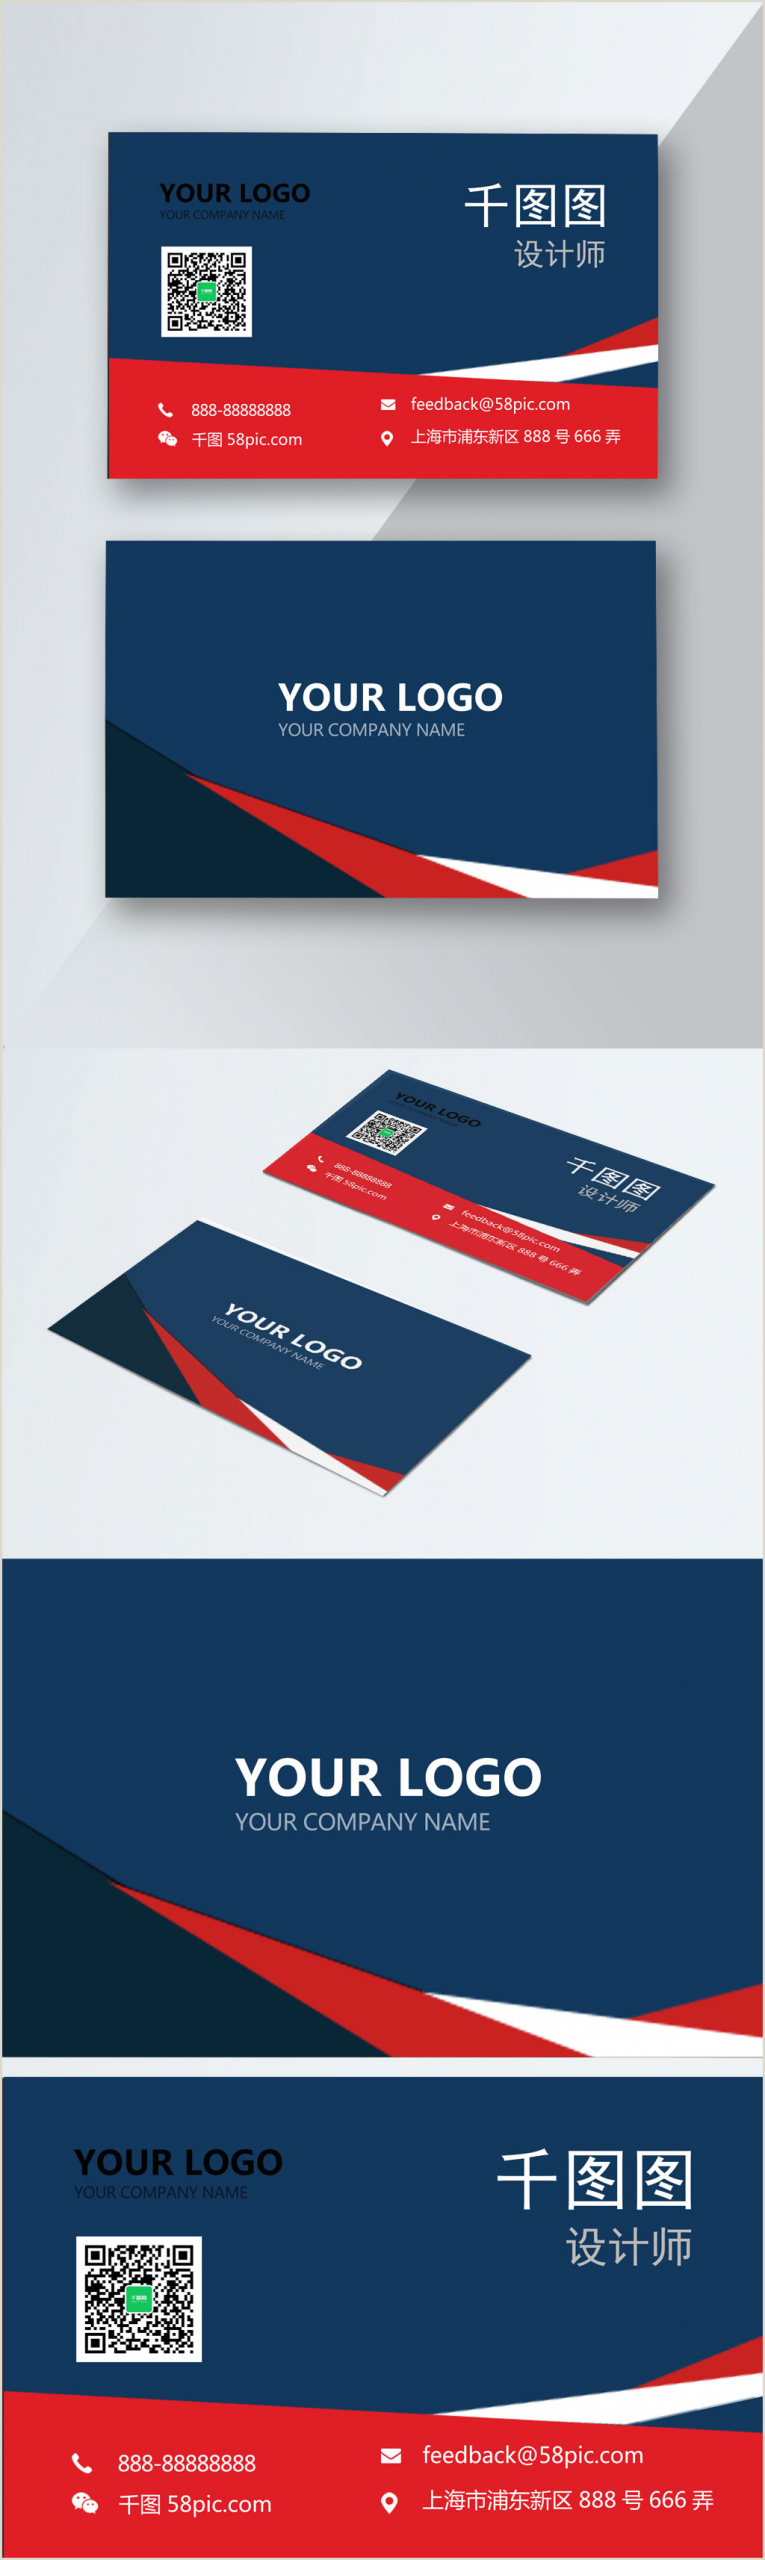 Business Card Border Template Blue 3d Color Block Border Business Card Template